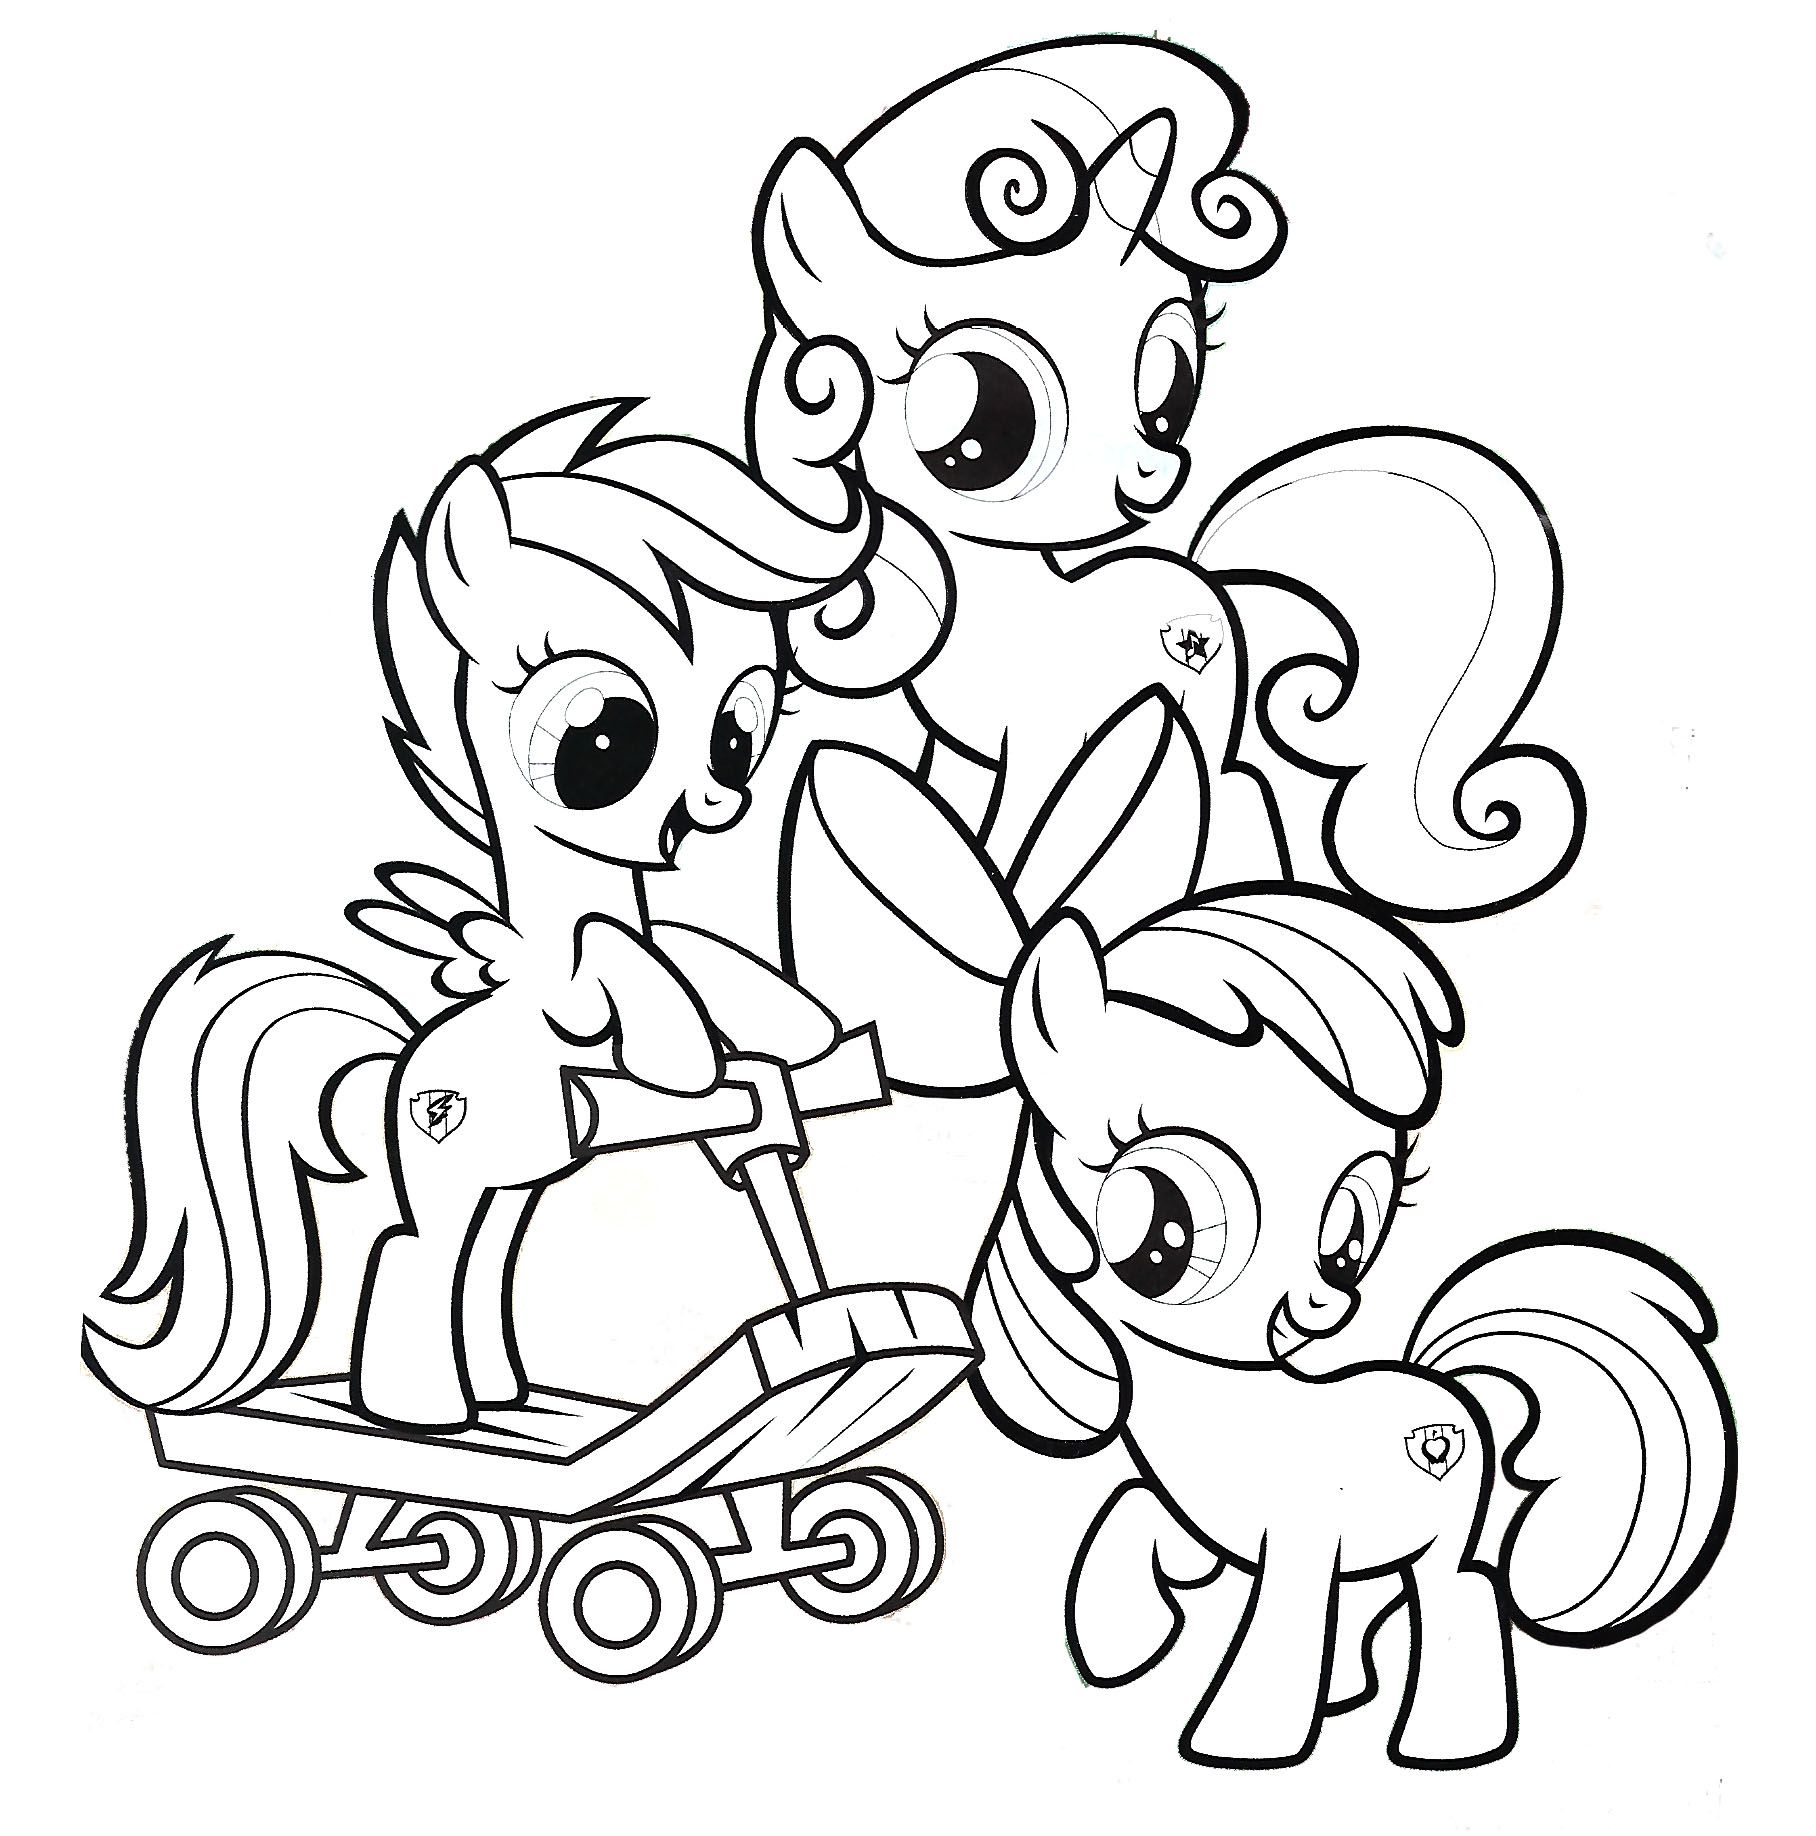 Cutie Mark Crusaders My Little Pony Coloring Page My Little Pony Coloring My Little Pony Printable Horse Coloring Pages